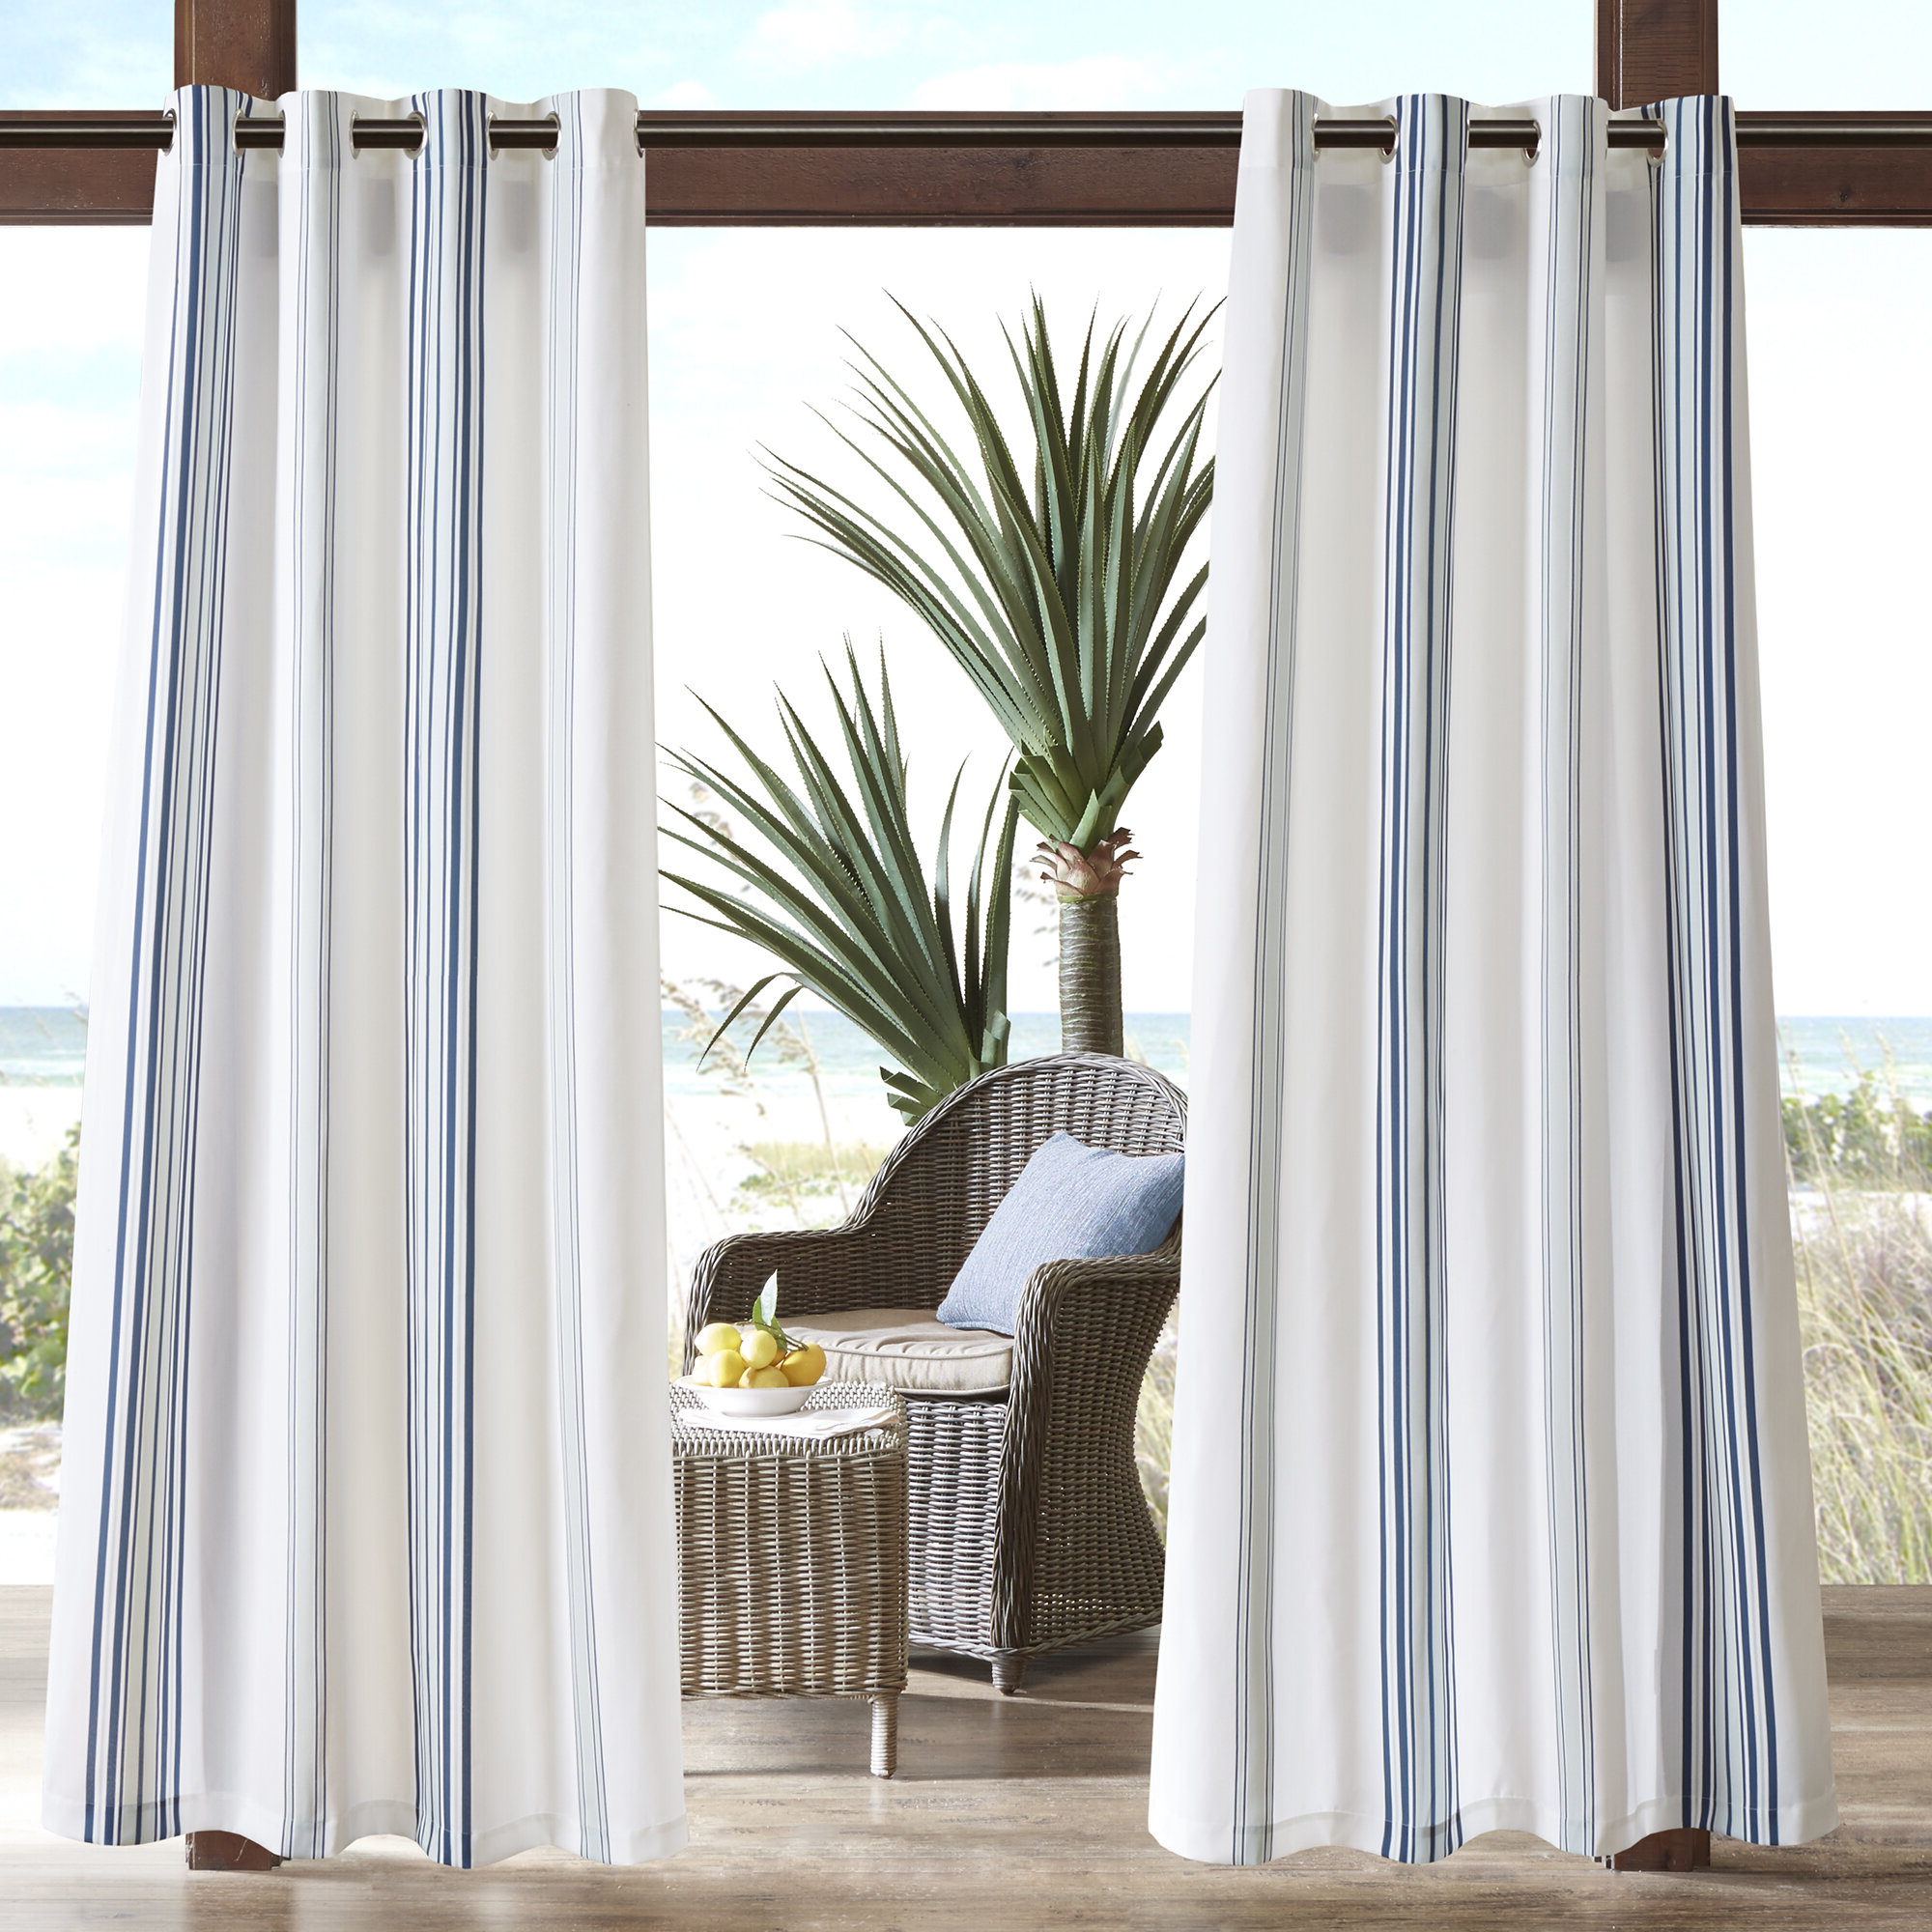 Most Up To Date Valencia Cabana Stripe Indoor/outdoor Curtain Panels In Corbin Striped Light Filtering Outdoor Single Curtain Panel (View 20 of 20)